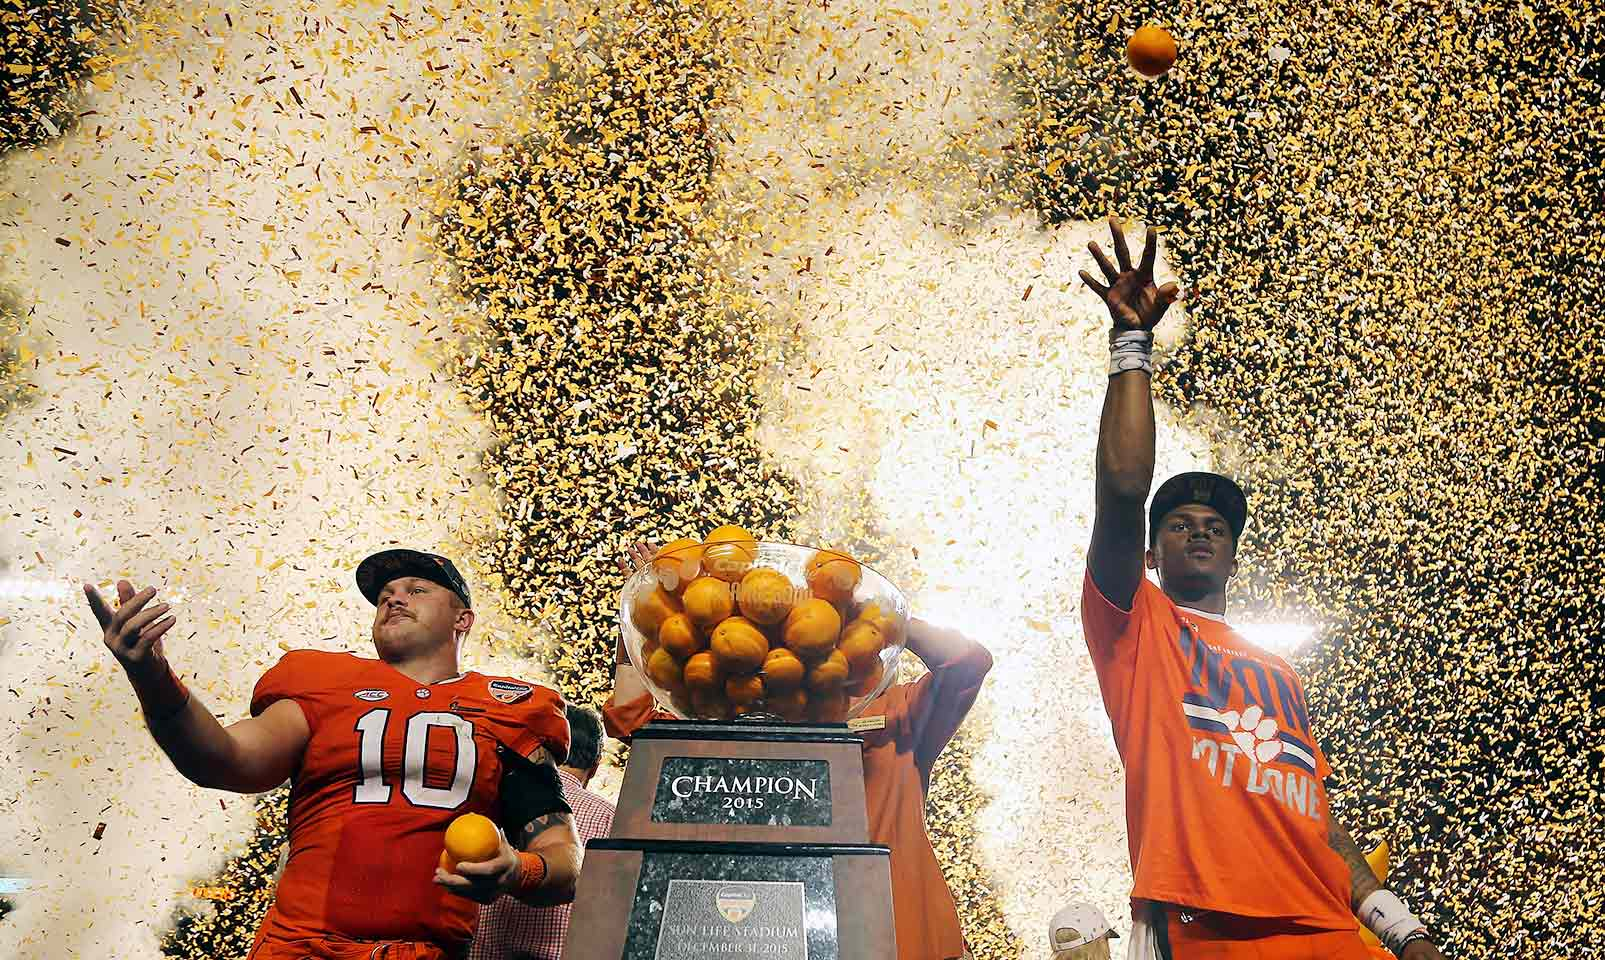 Kickoff time for national championship game - Clemson 37 Oklahoma 17 The Tigers Piled On 312 Rushing Yards While Limiting The